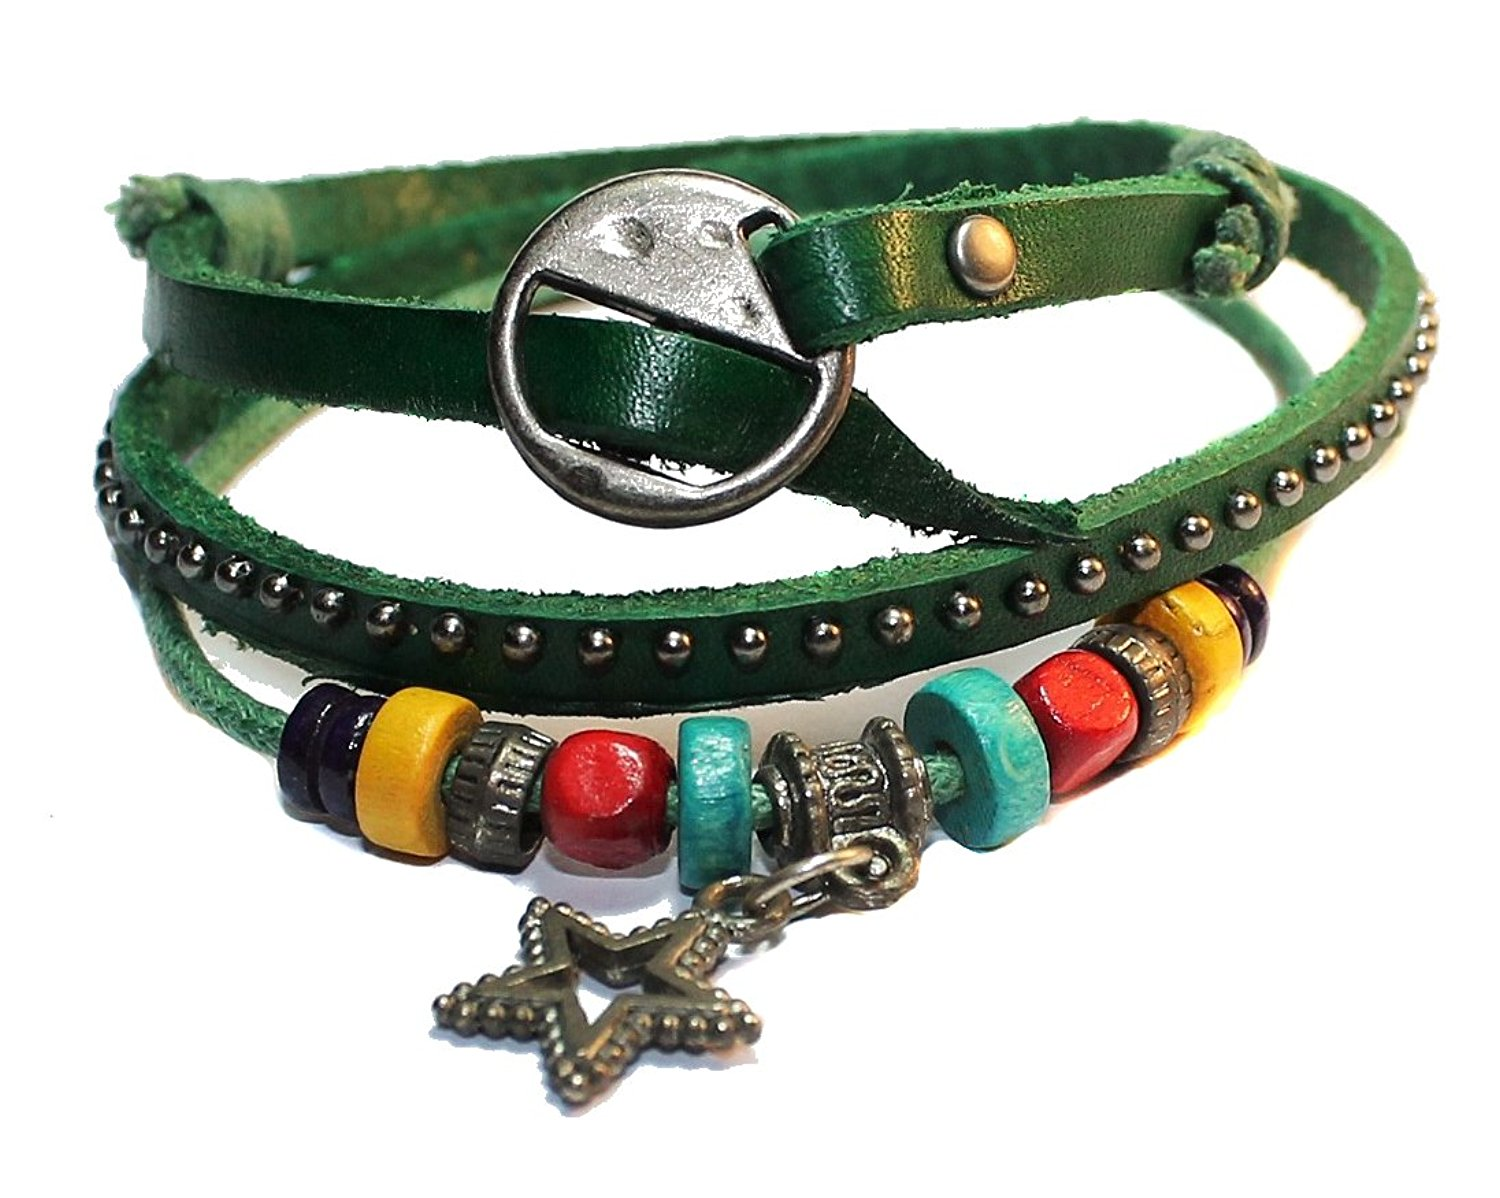 Fashion Bracelet or Necklace Leather Women Girls, Wood Bead Matal Star Engraved Triple Leather, Green